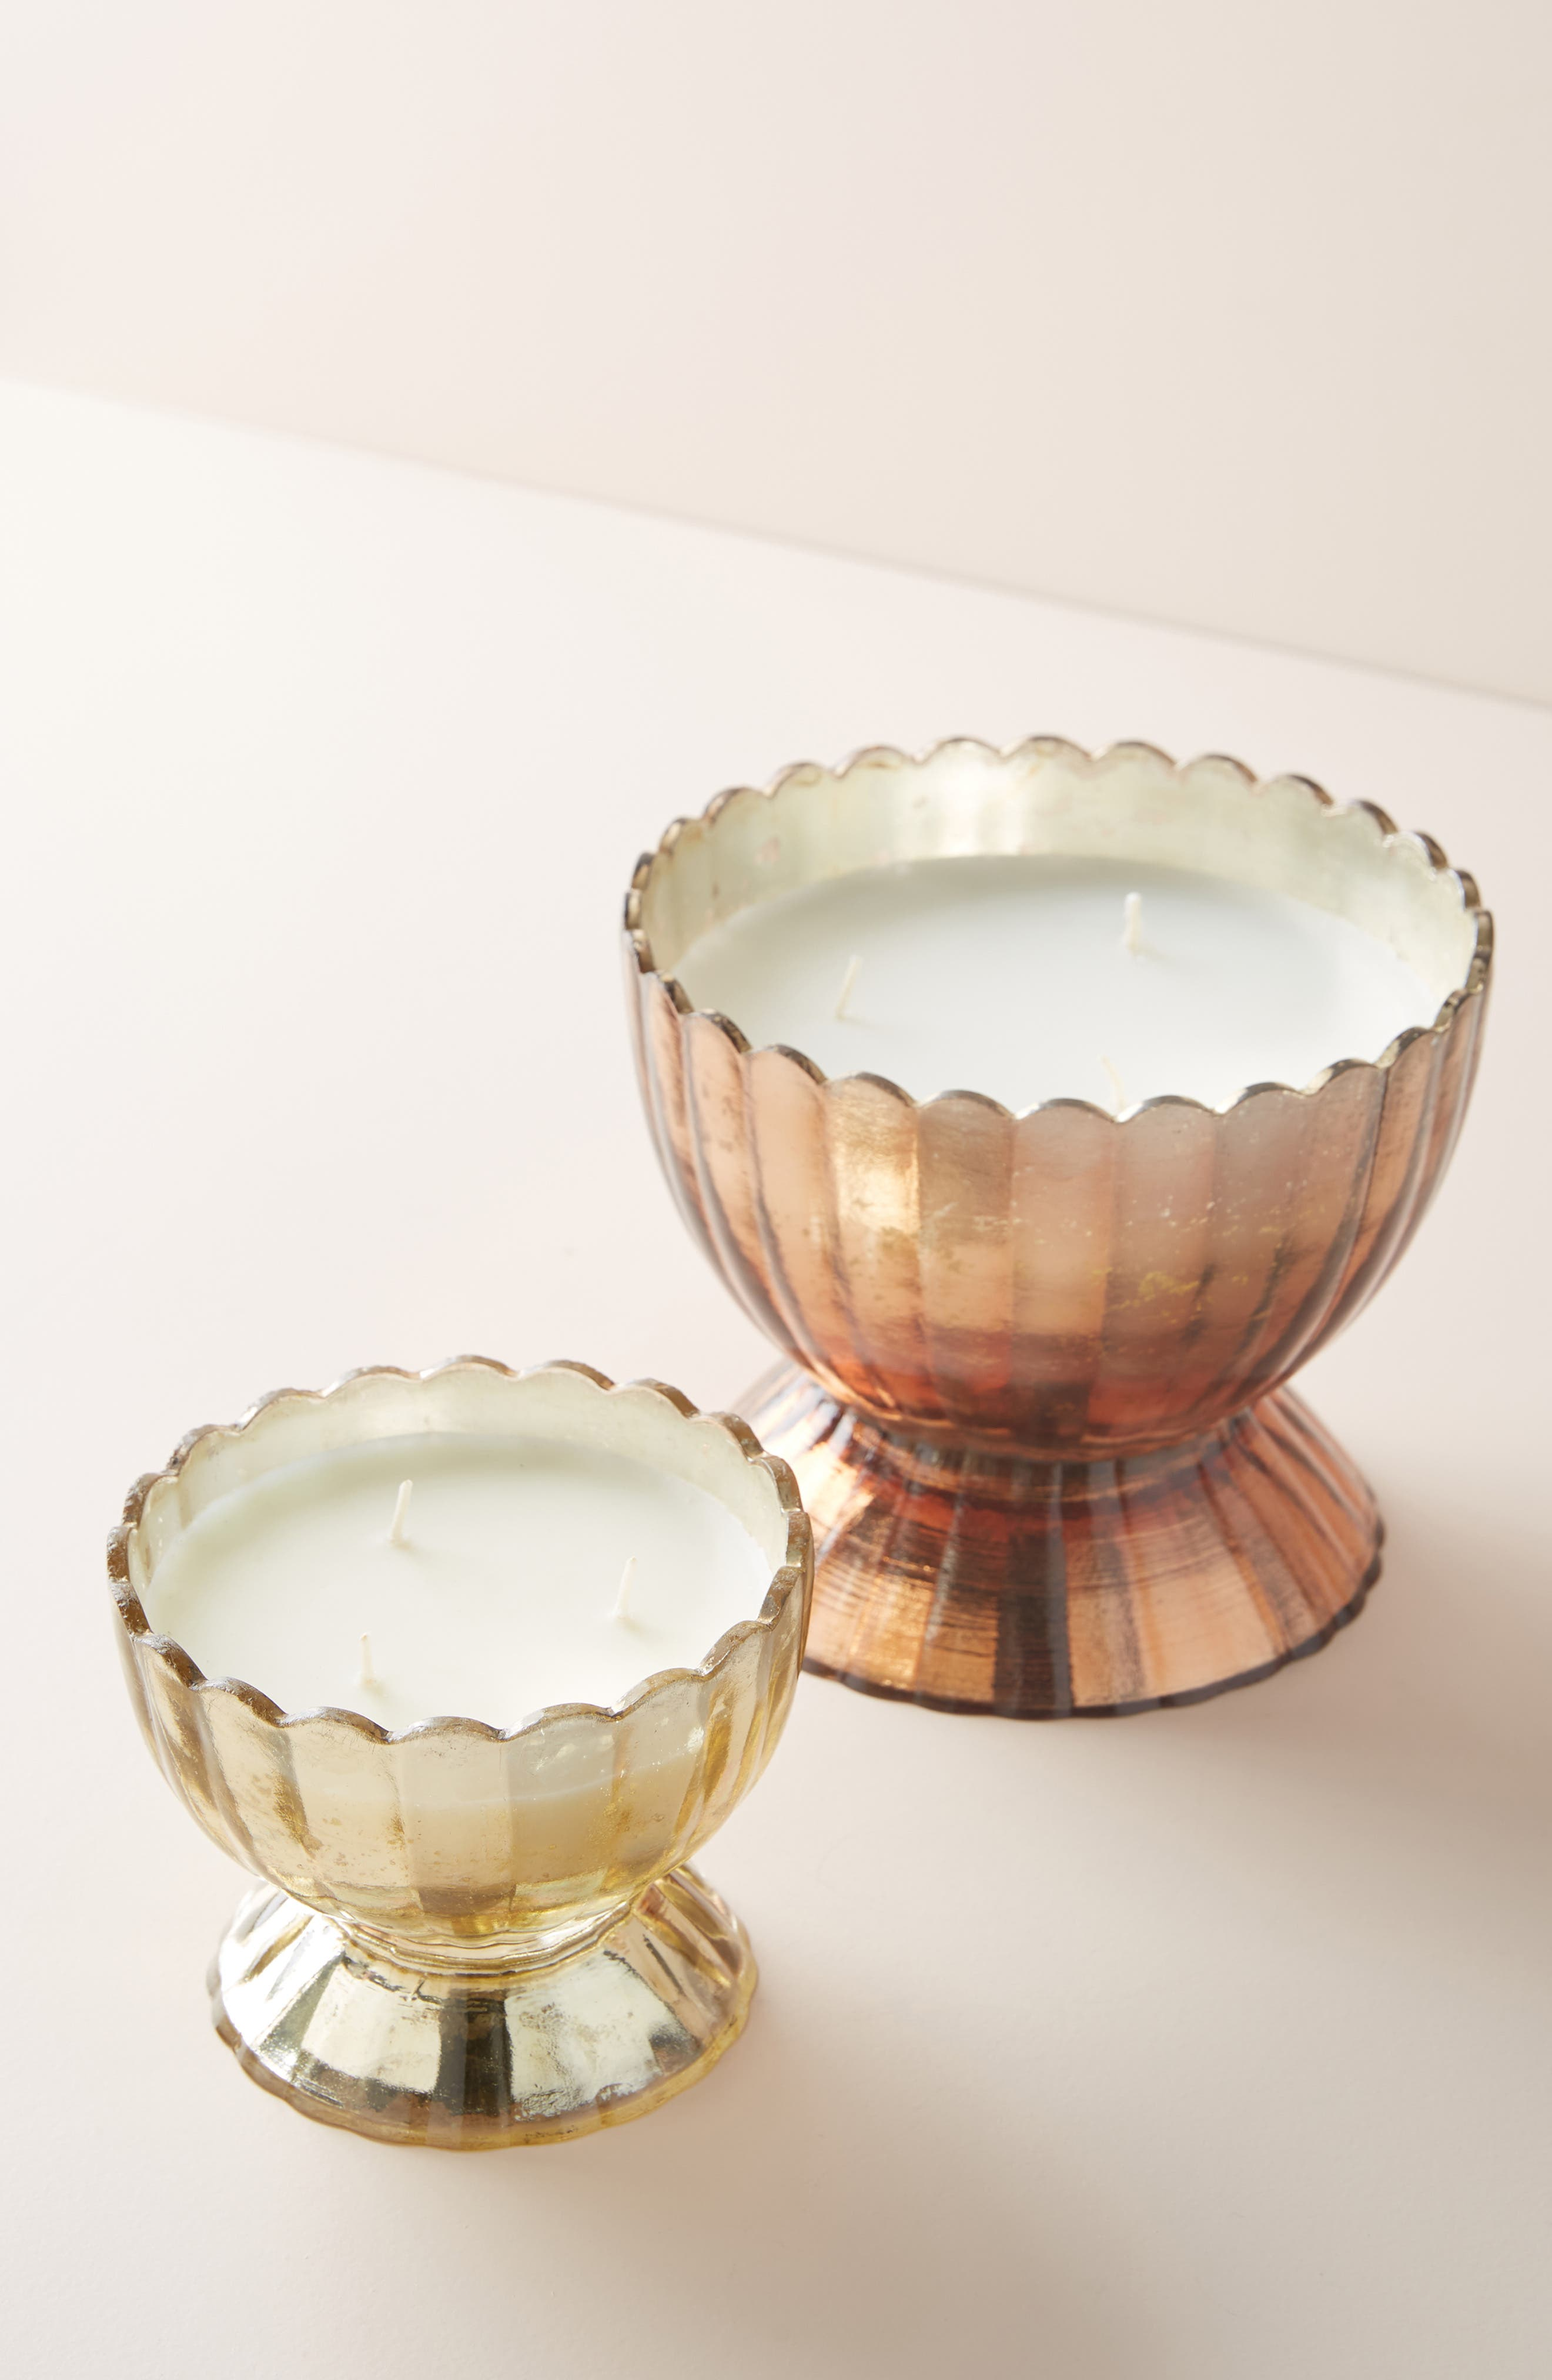 ANTHROPOLOGIE,                             Apricot Blossom Glass Flower Candle,                             Alternate thumbnail 2, color,                             APRICOT BLOSSOM